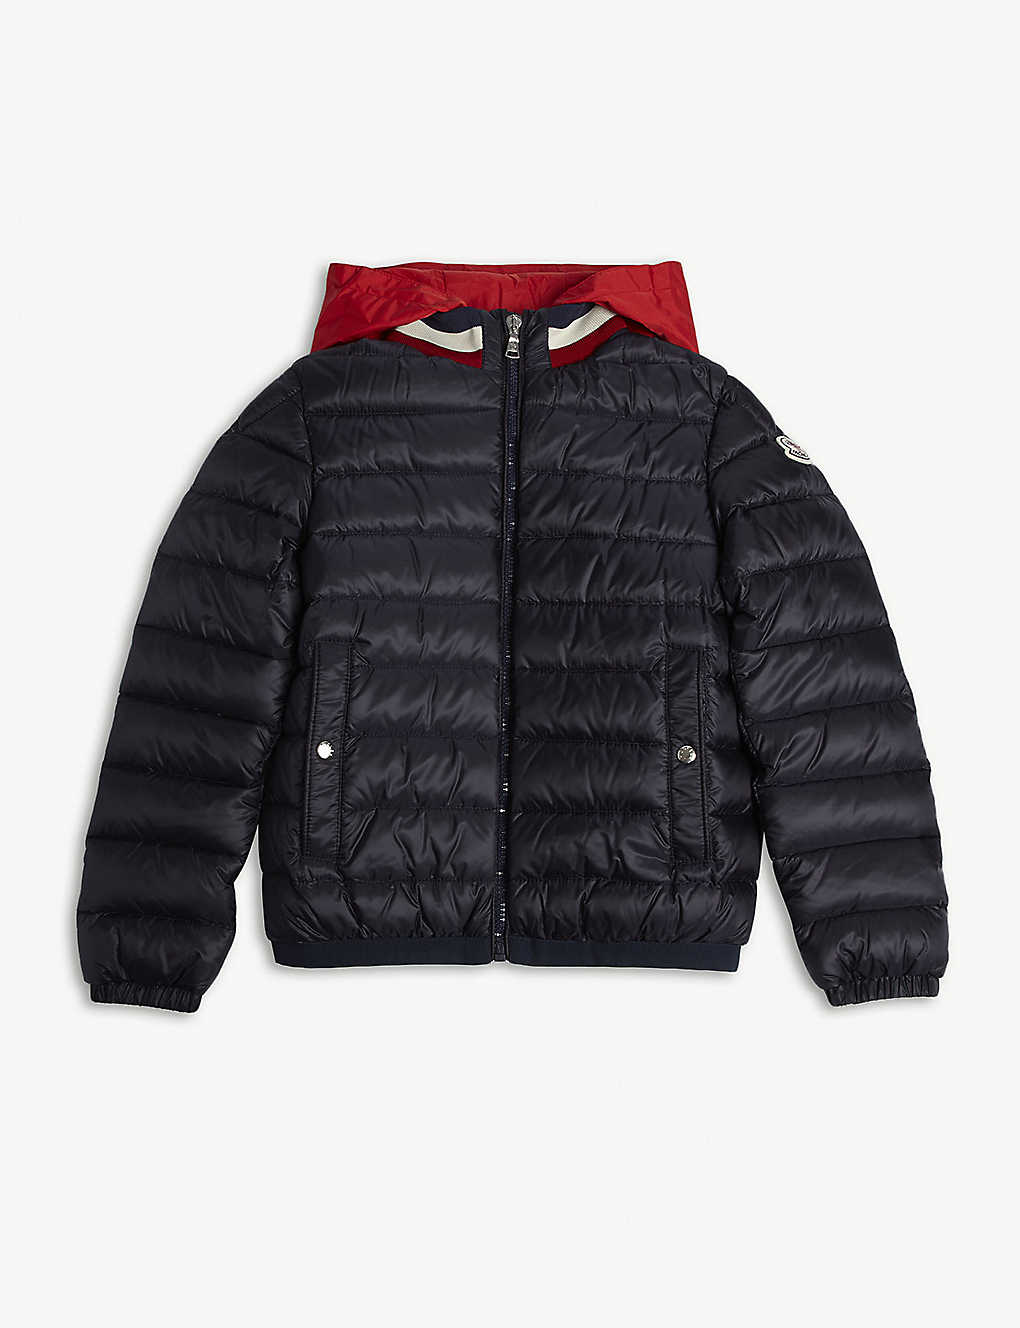 044510ccfe00 MONCLER - Rouen quilted down jacket 4-14 years